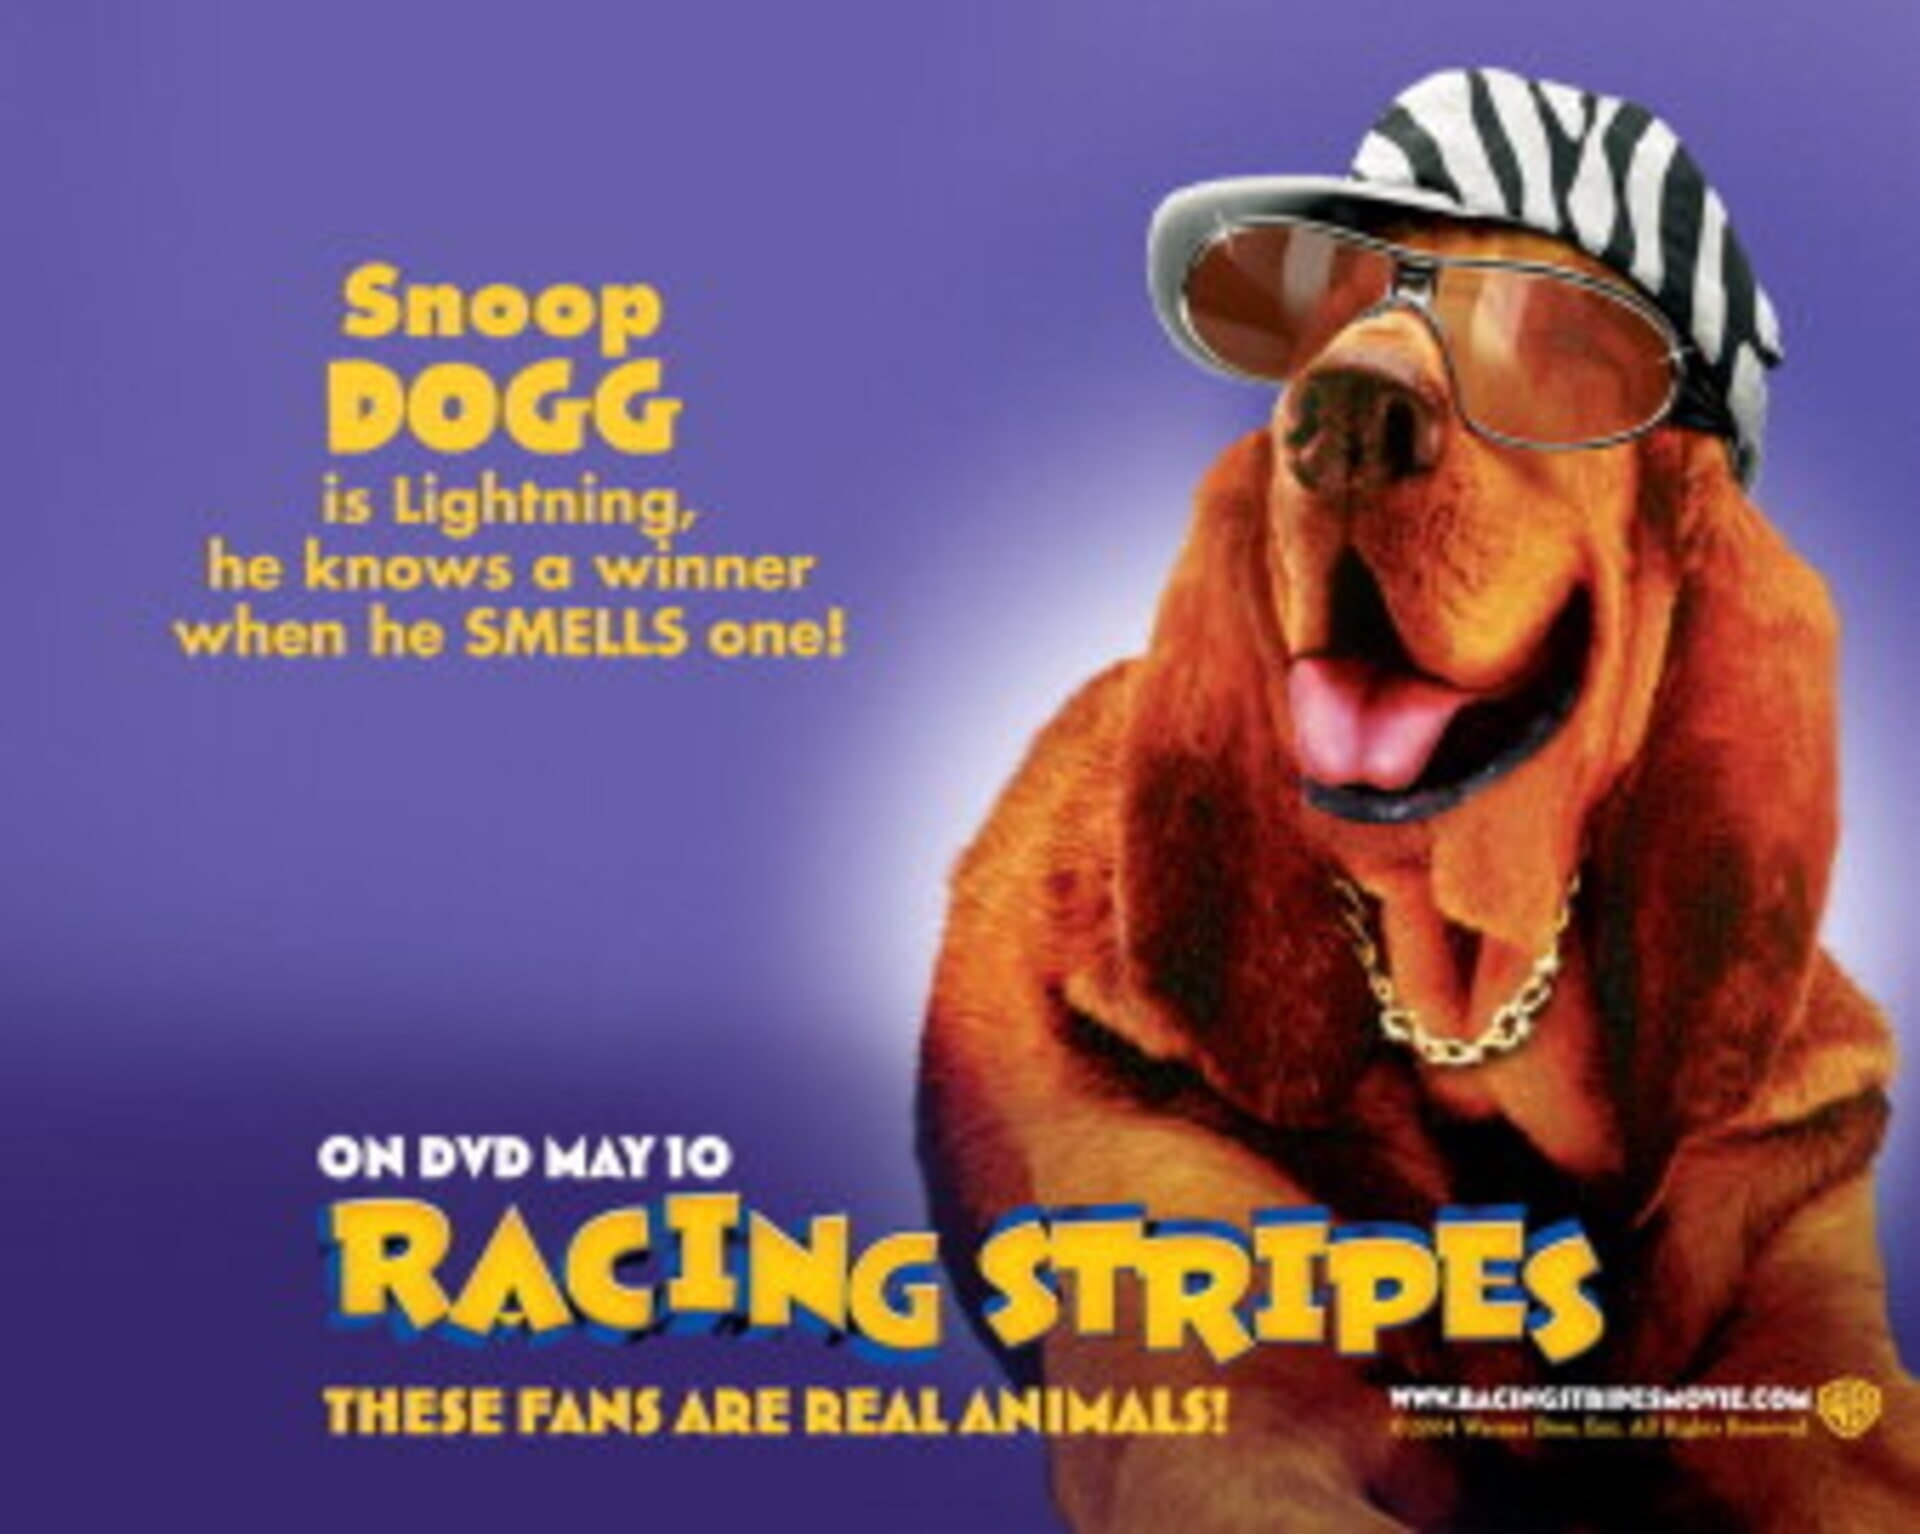 Racing Stripes - Image 27